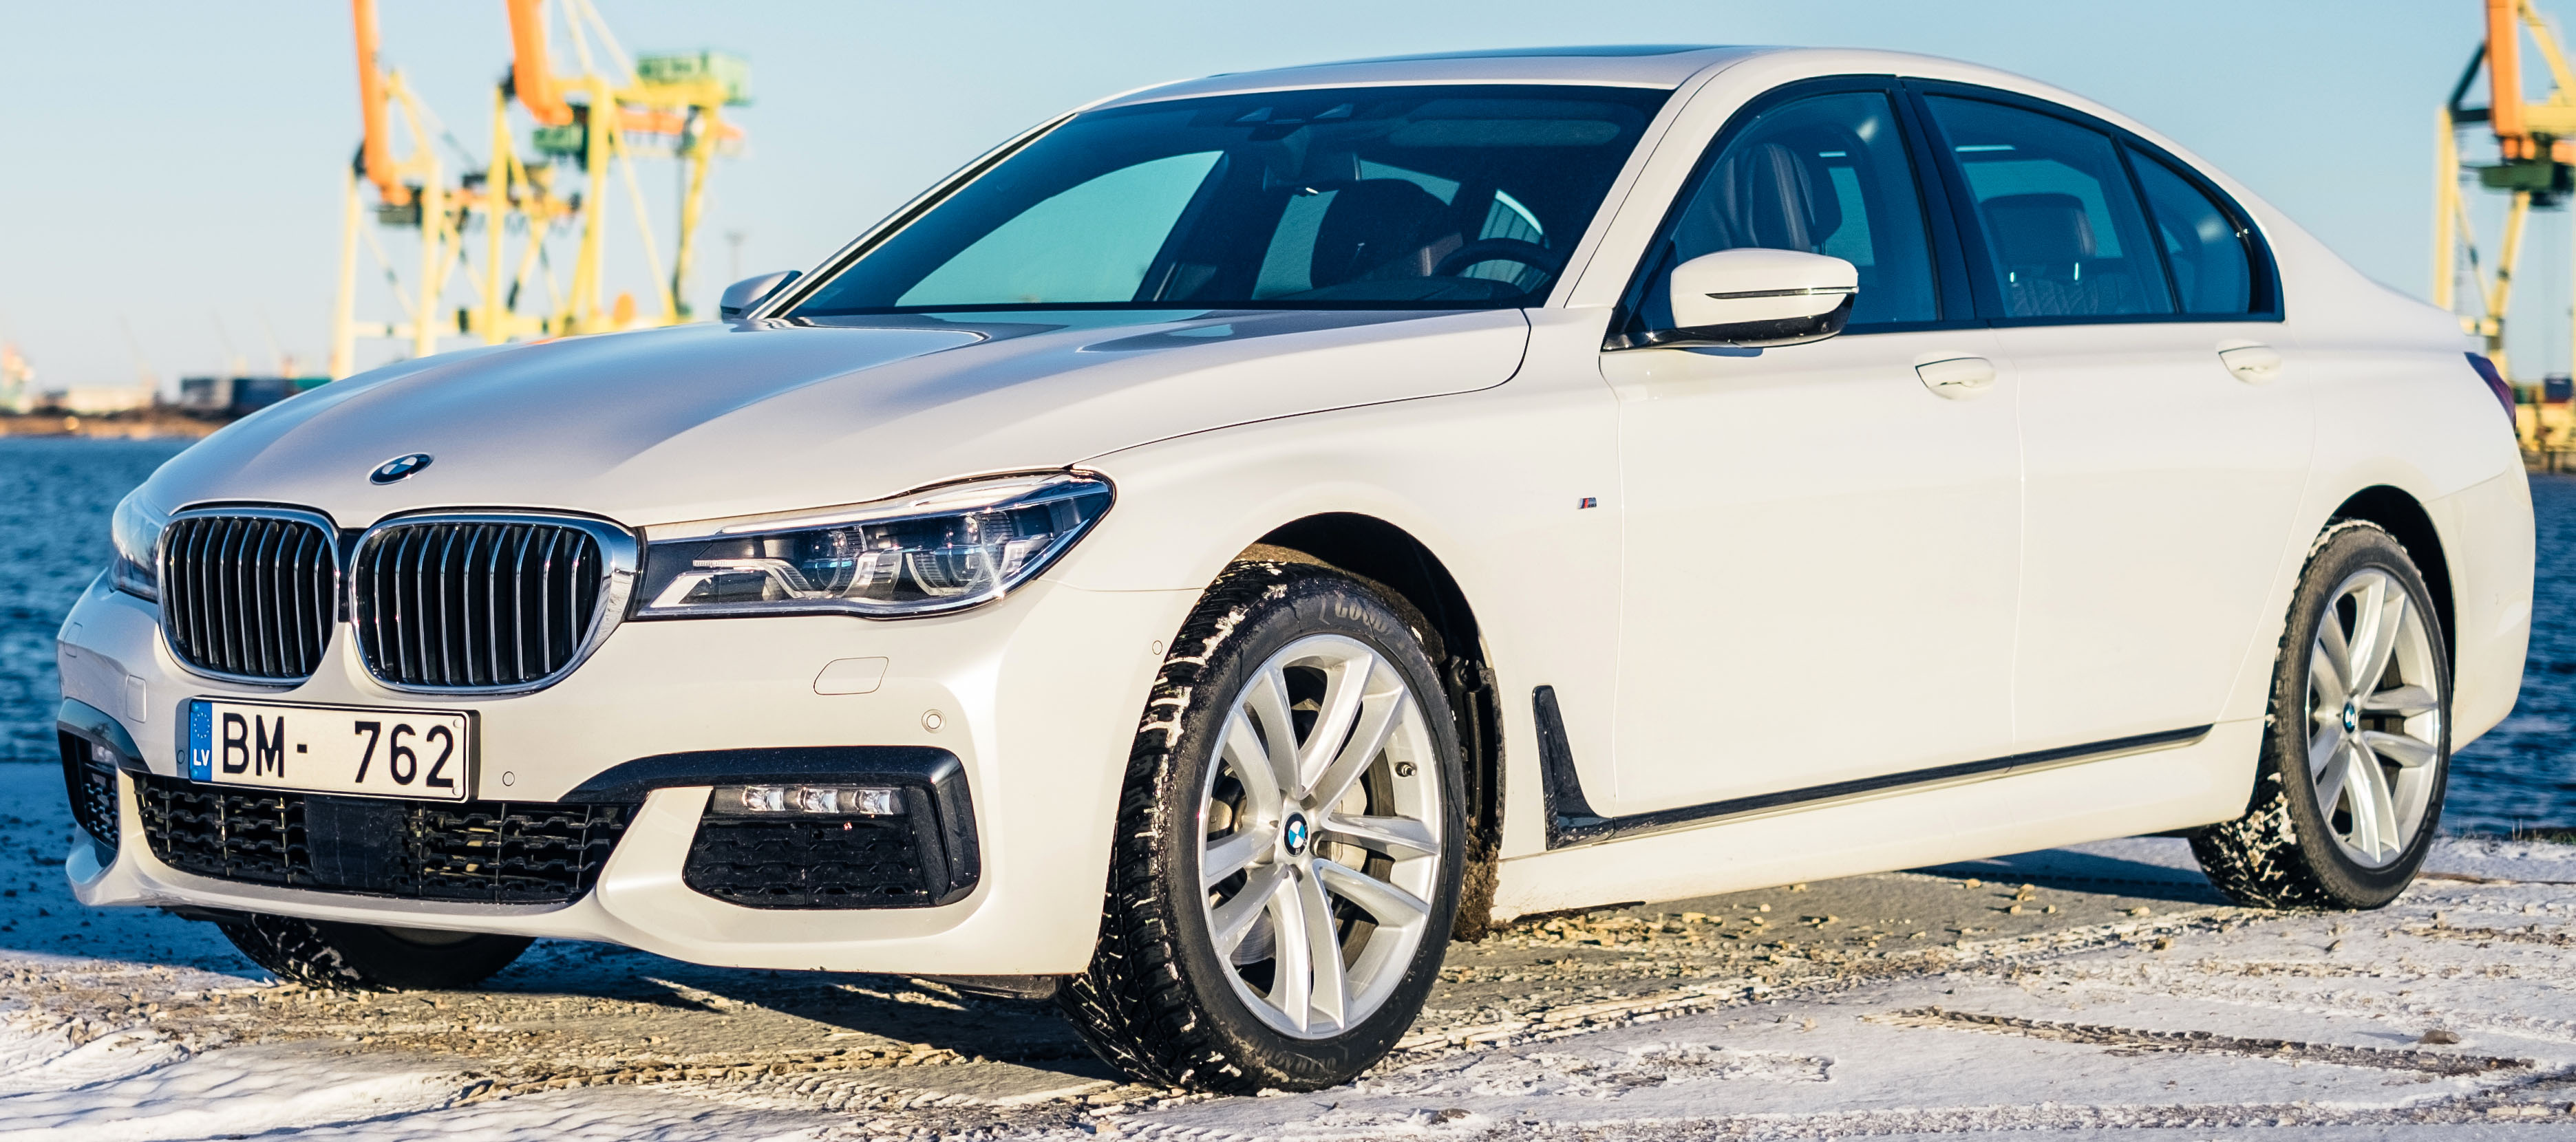 Permalink to Bmw 7 Series Comparison